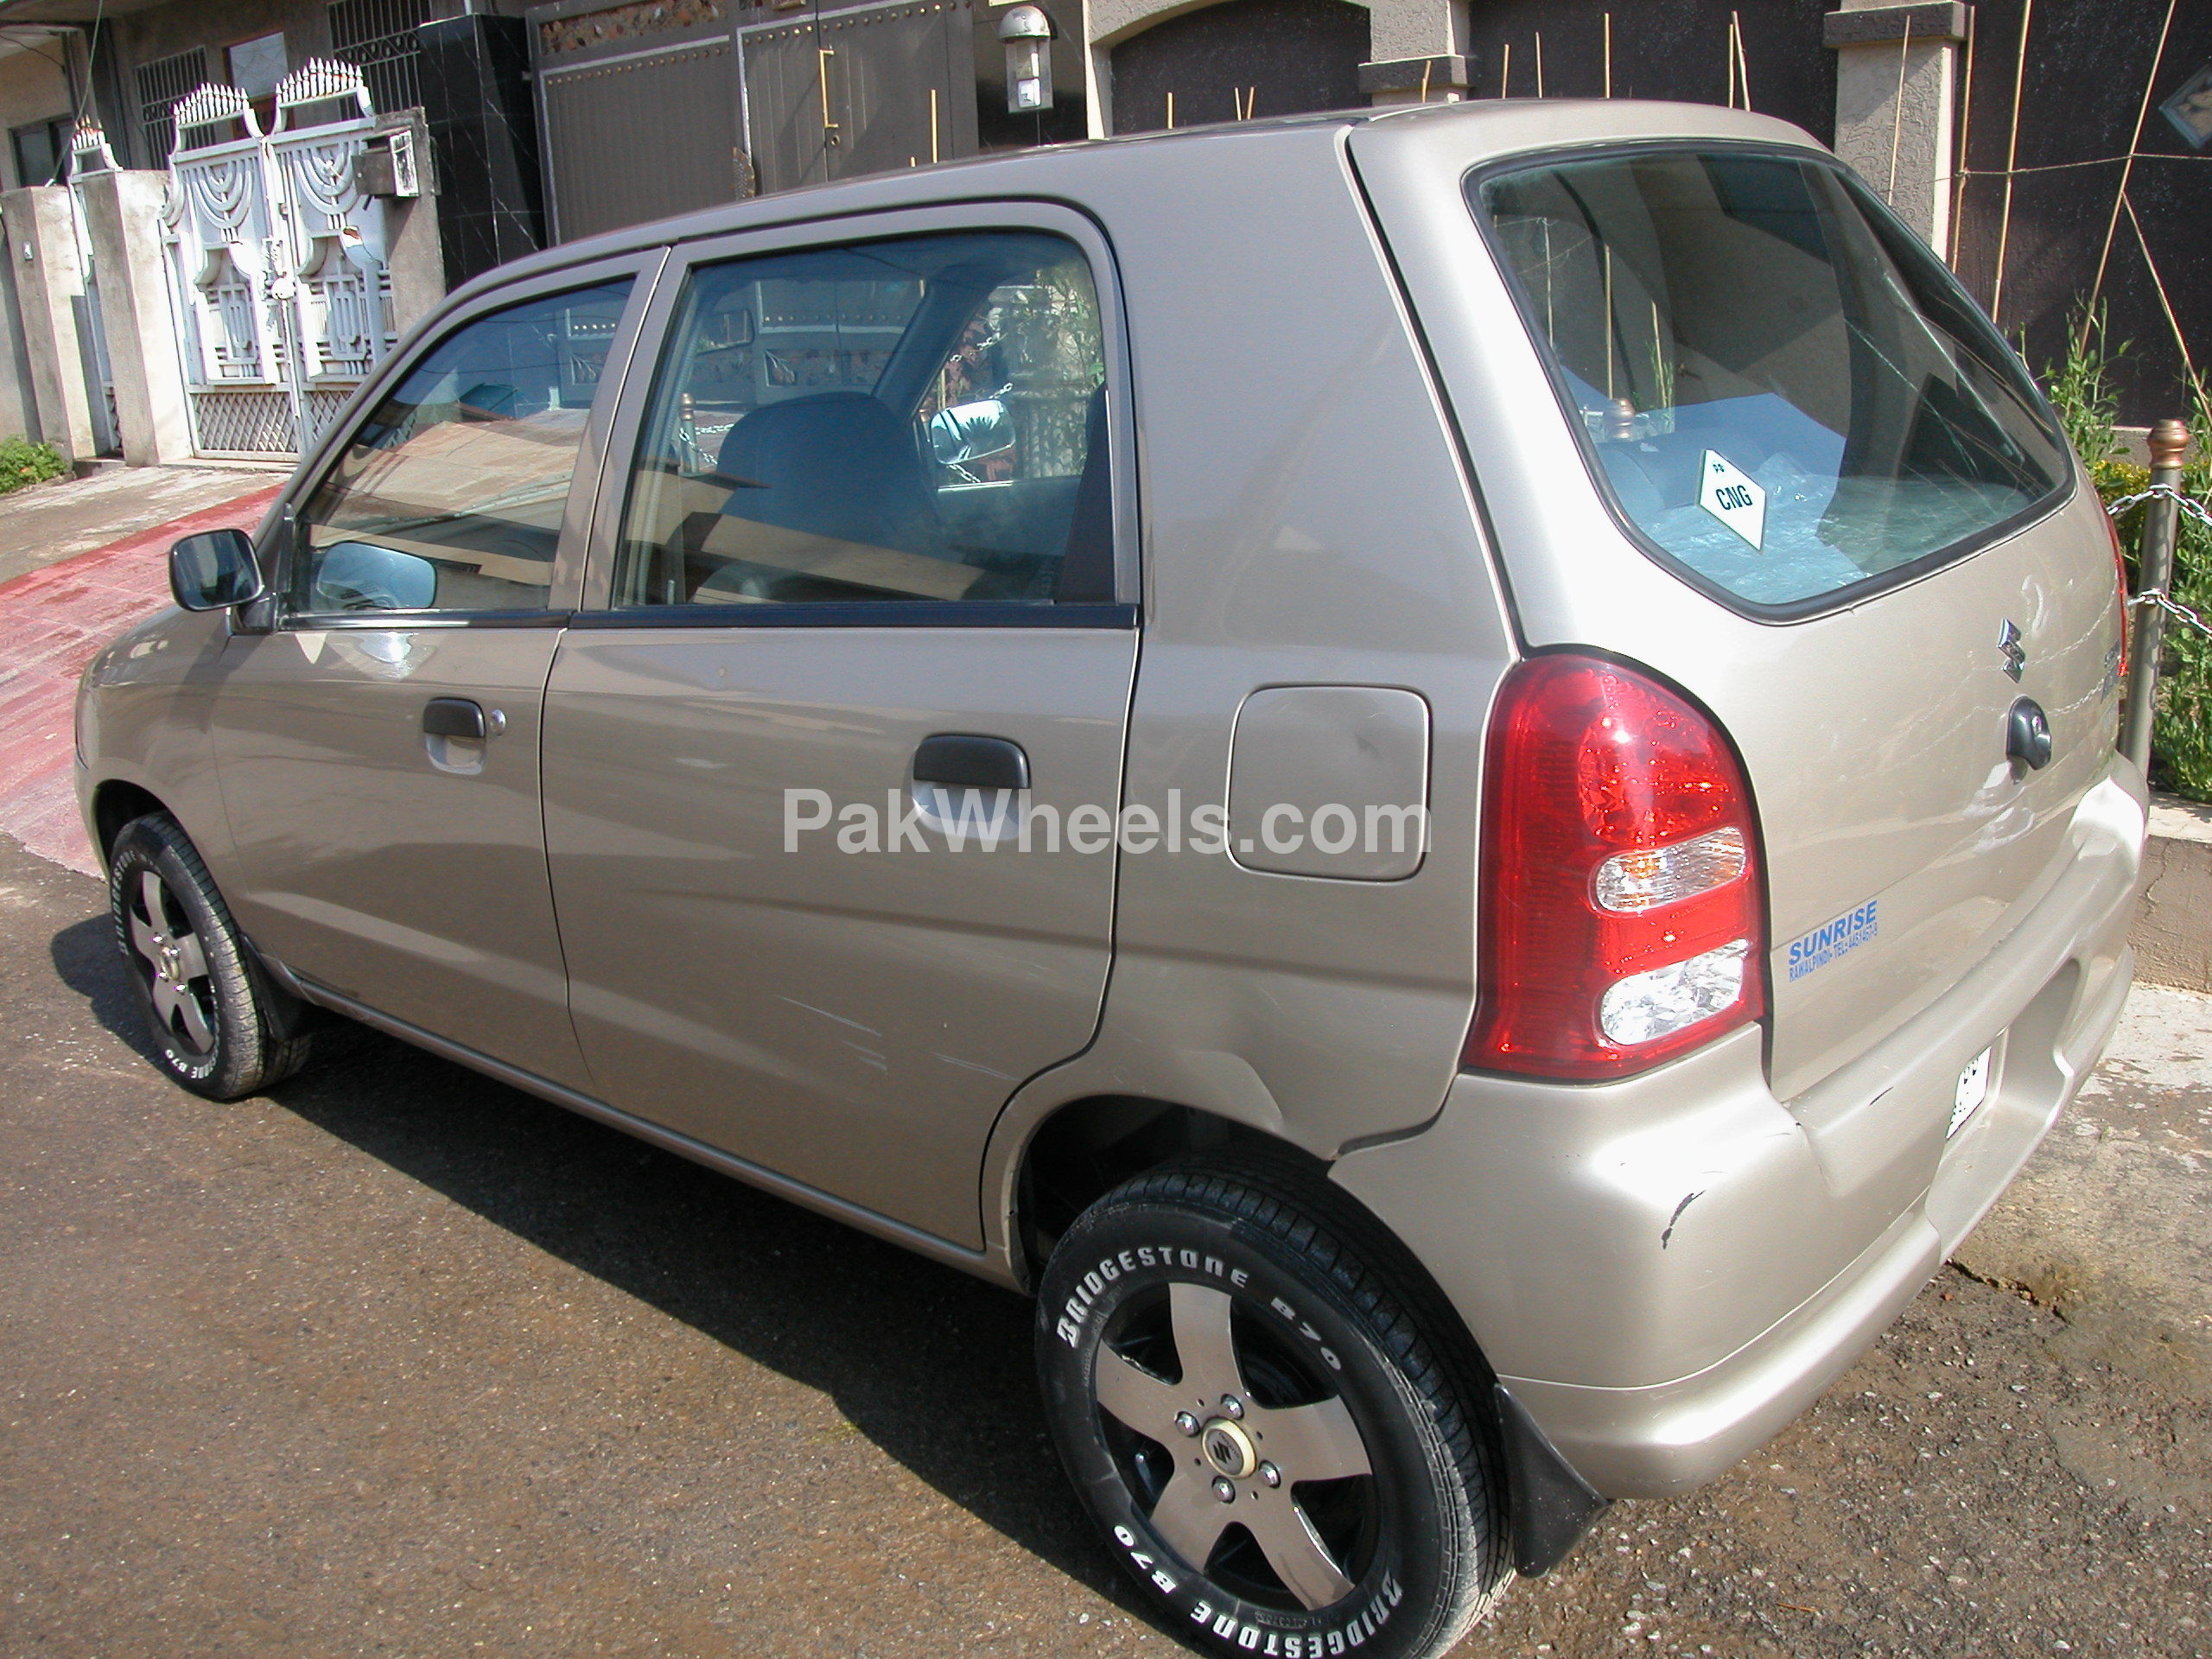 Cars For Sale In Pakistan >> Suzuki Alto 2007 of faheemboy - Member Ride 15616 | PakWheels